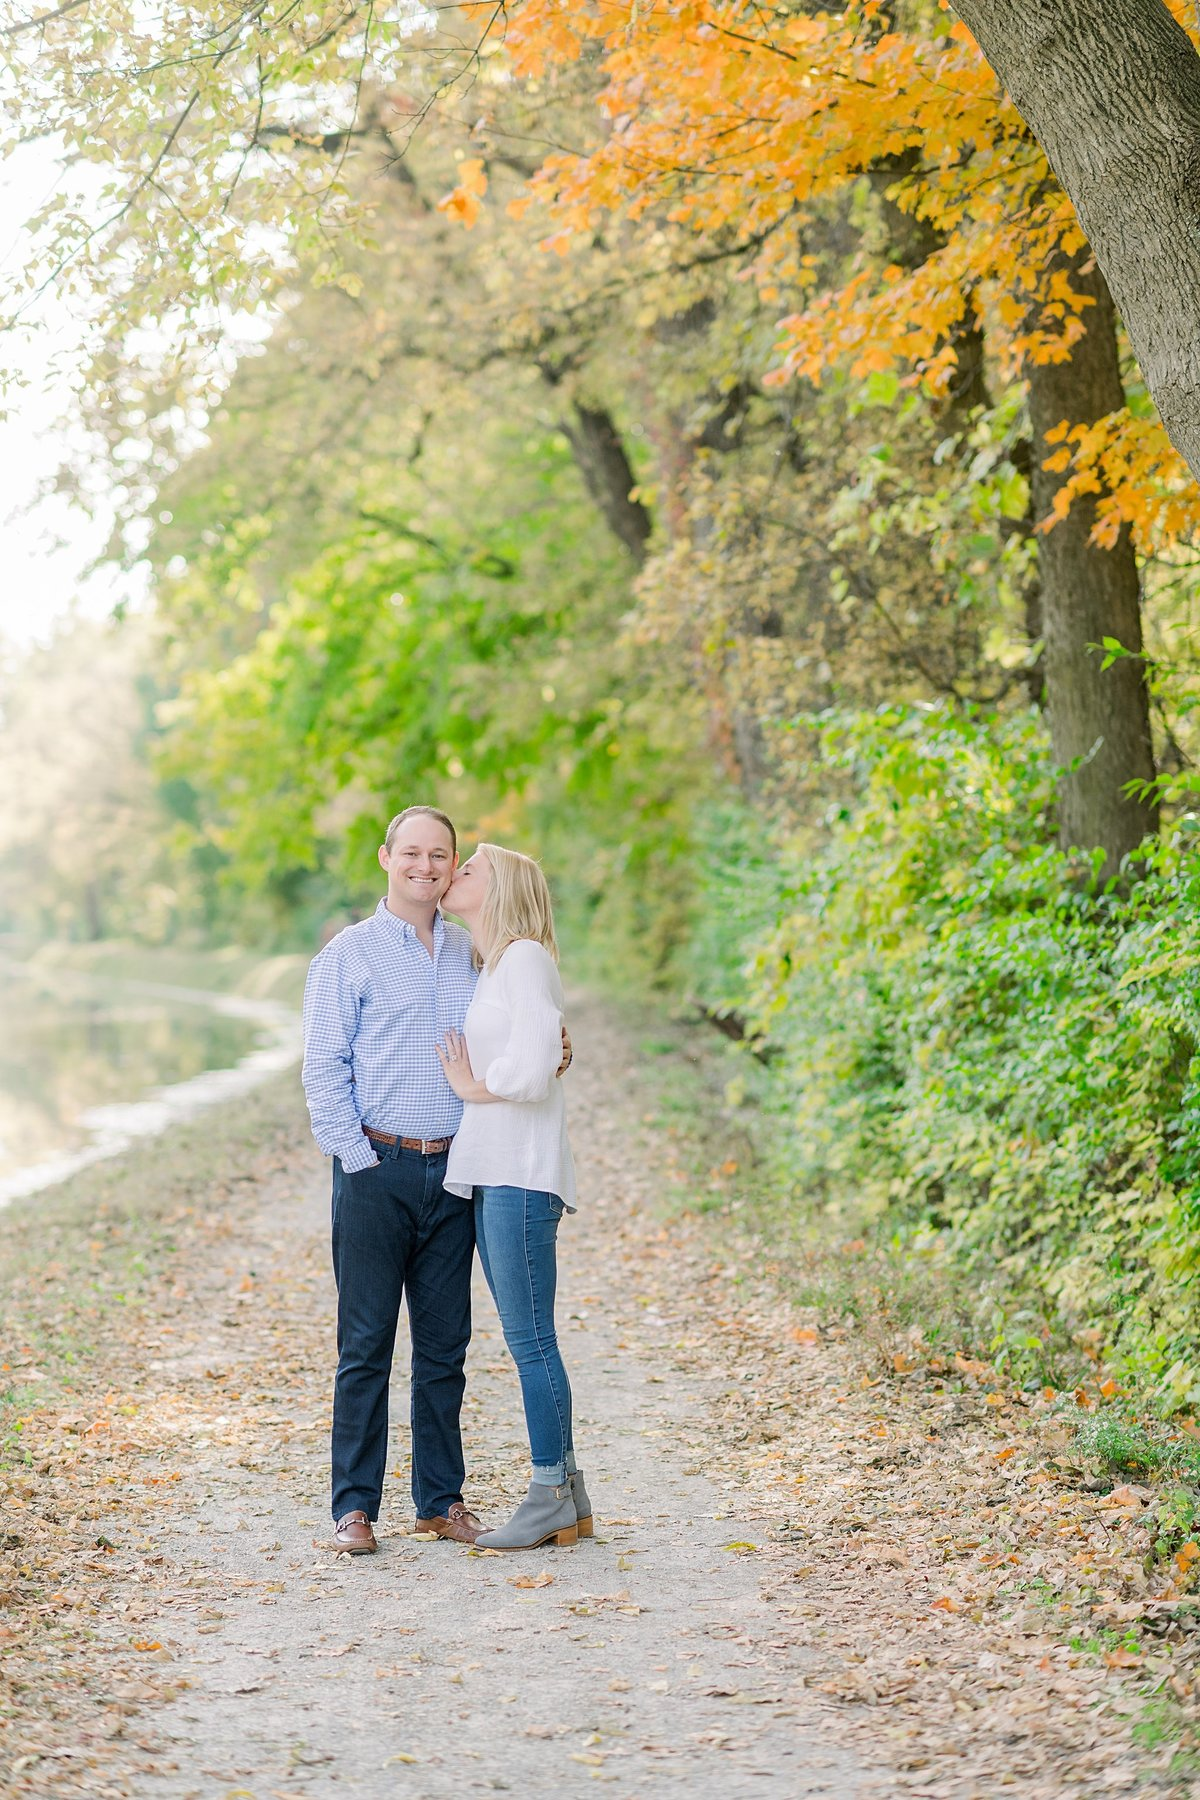 Holcomb Gardens Engagement Session Indianapolis, Indiana Wedding Photographer Alison Mae Photography_3176